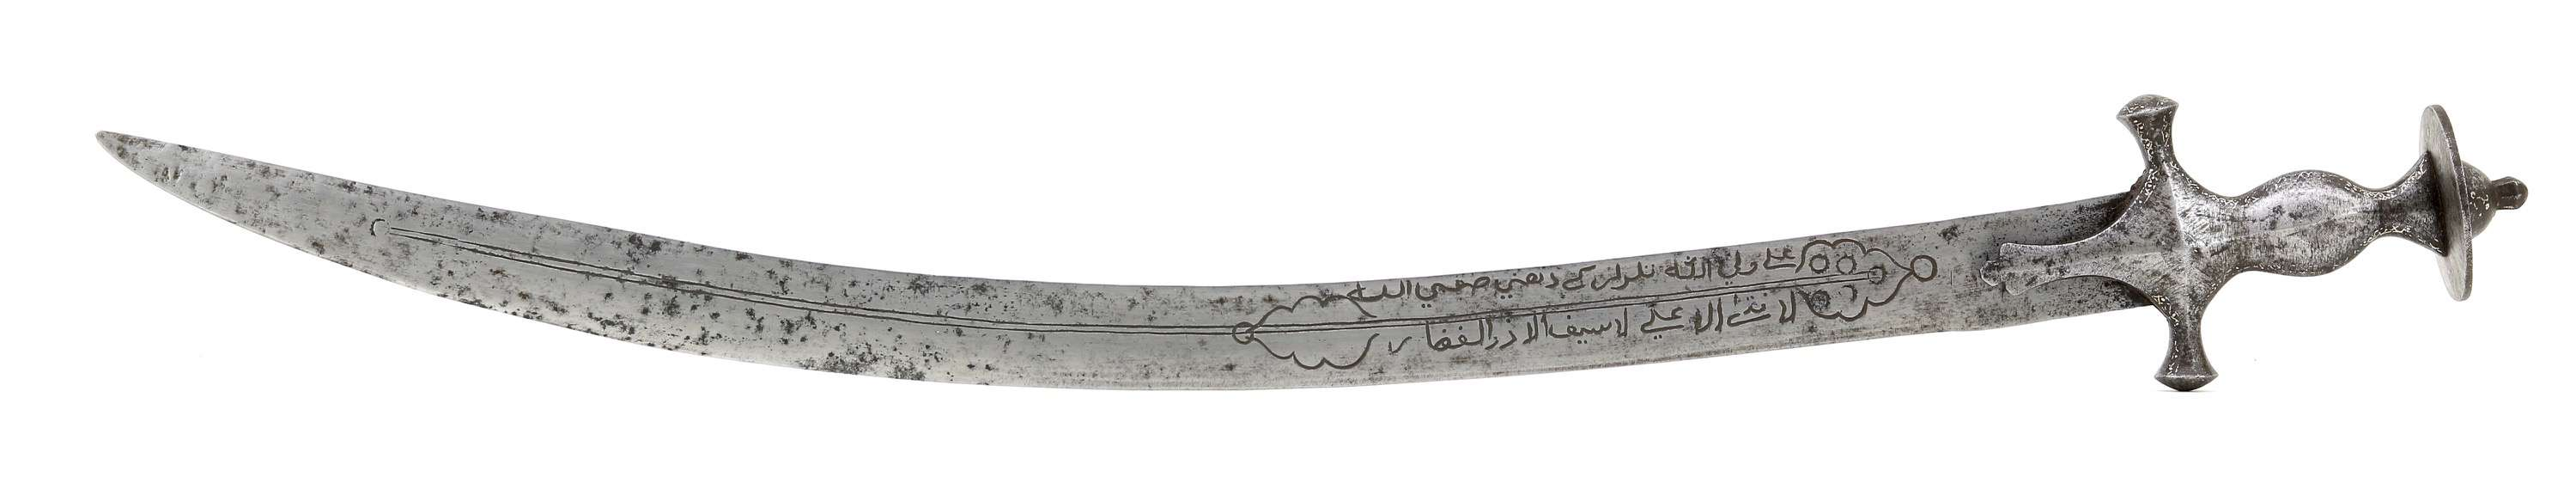 Talwar with Mamluk style blade chiseling